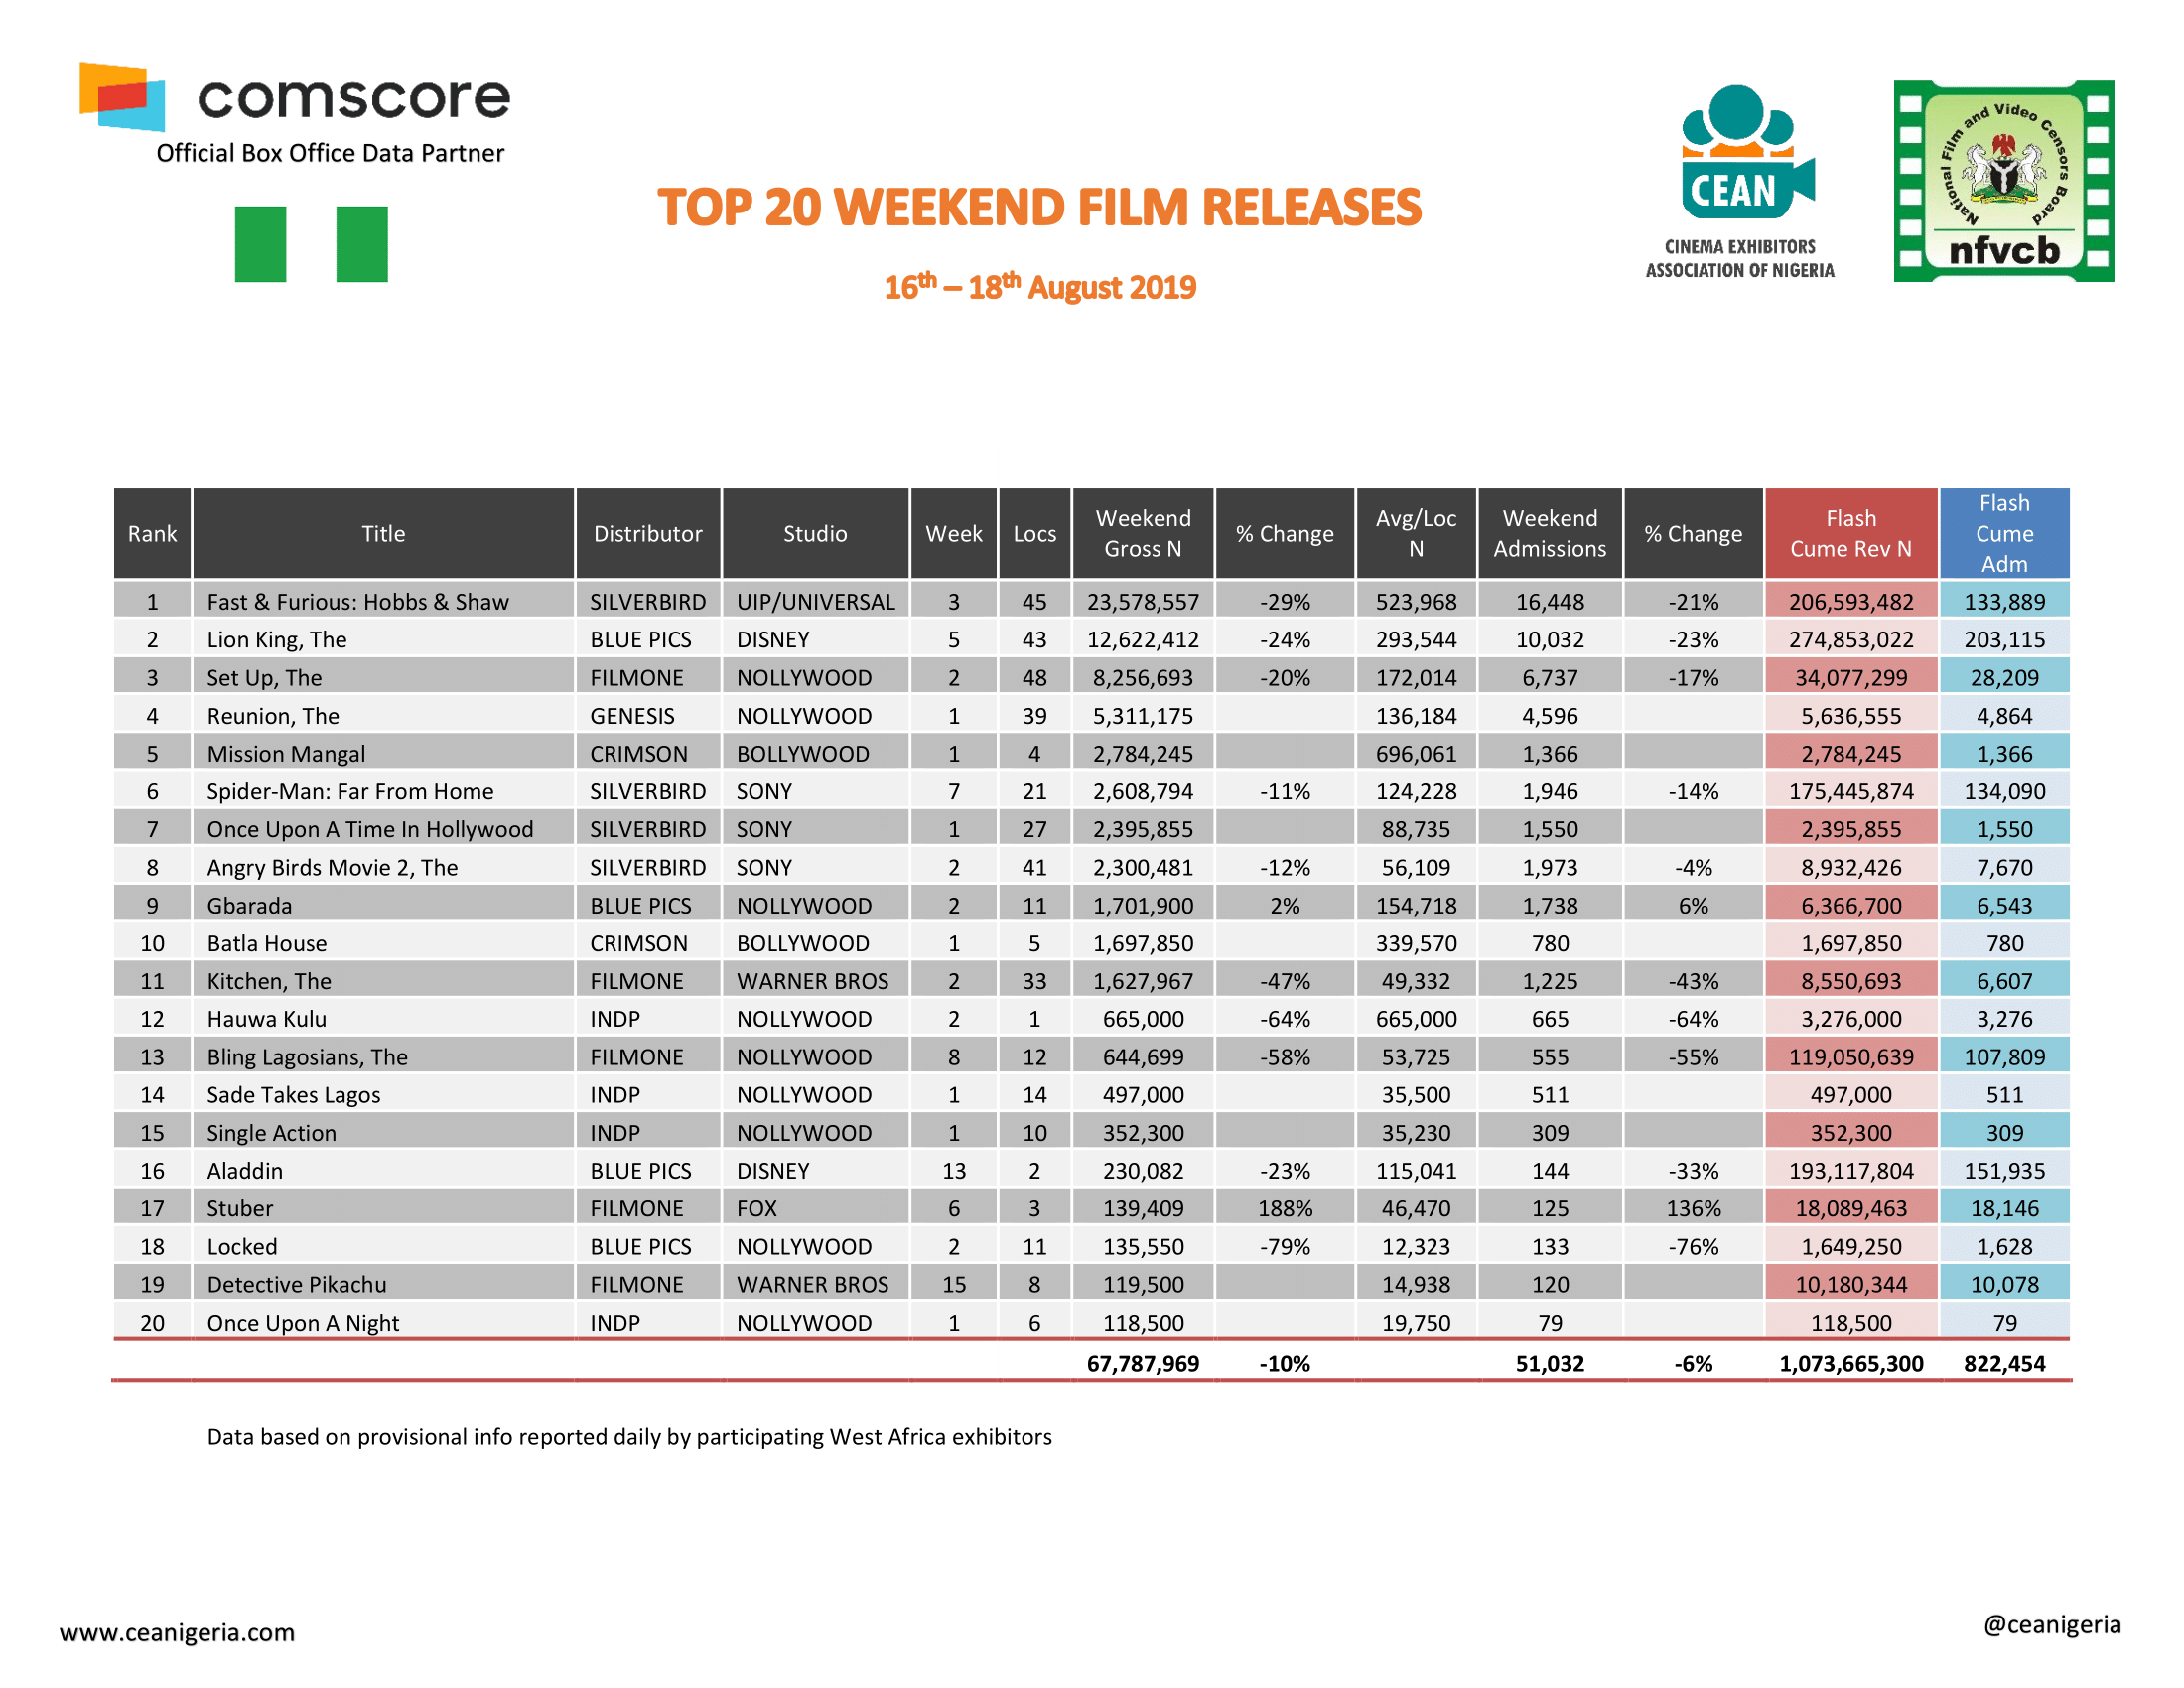 Top 20 Films 16th 18th August 2019